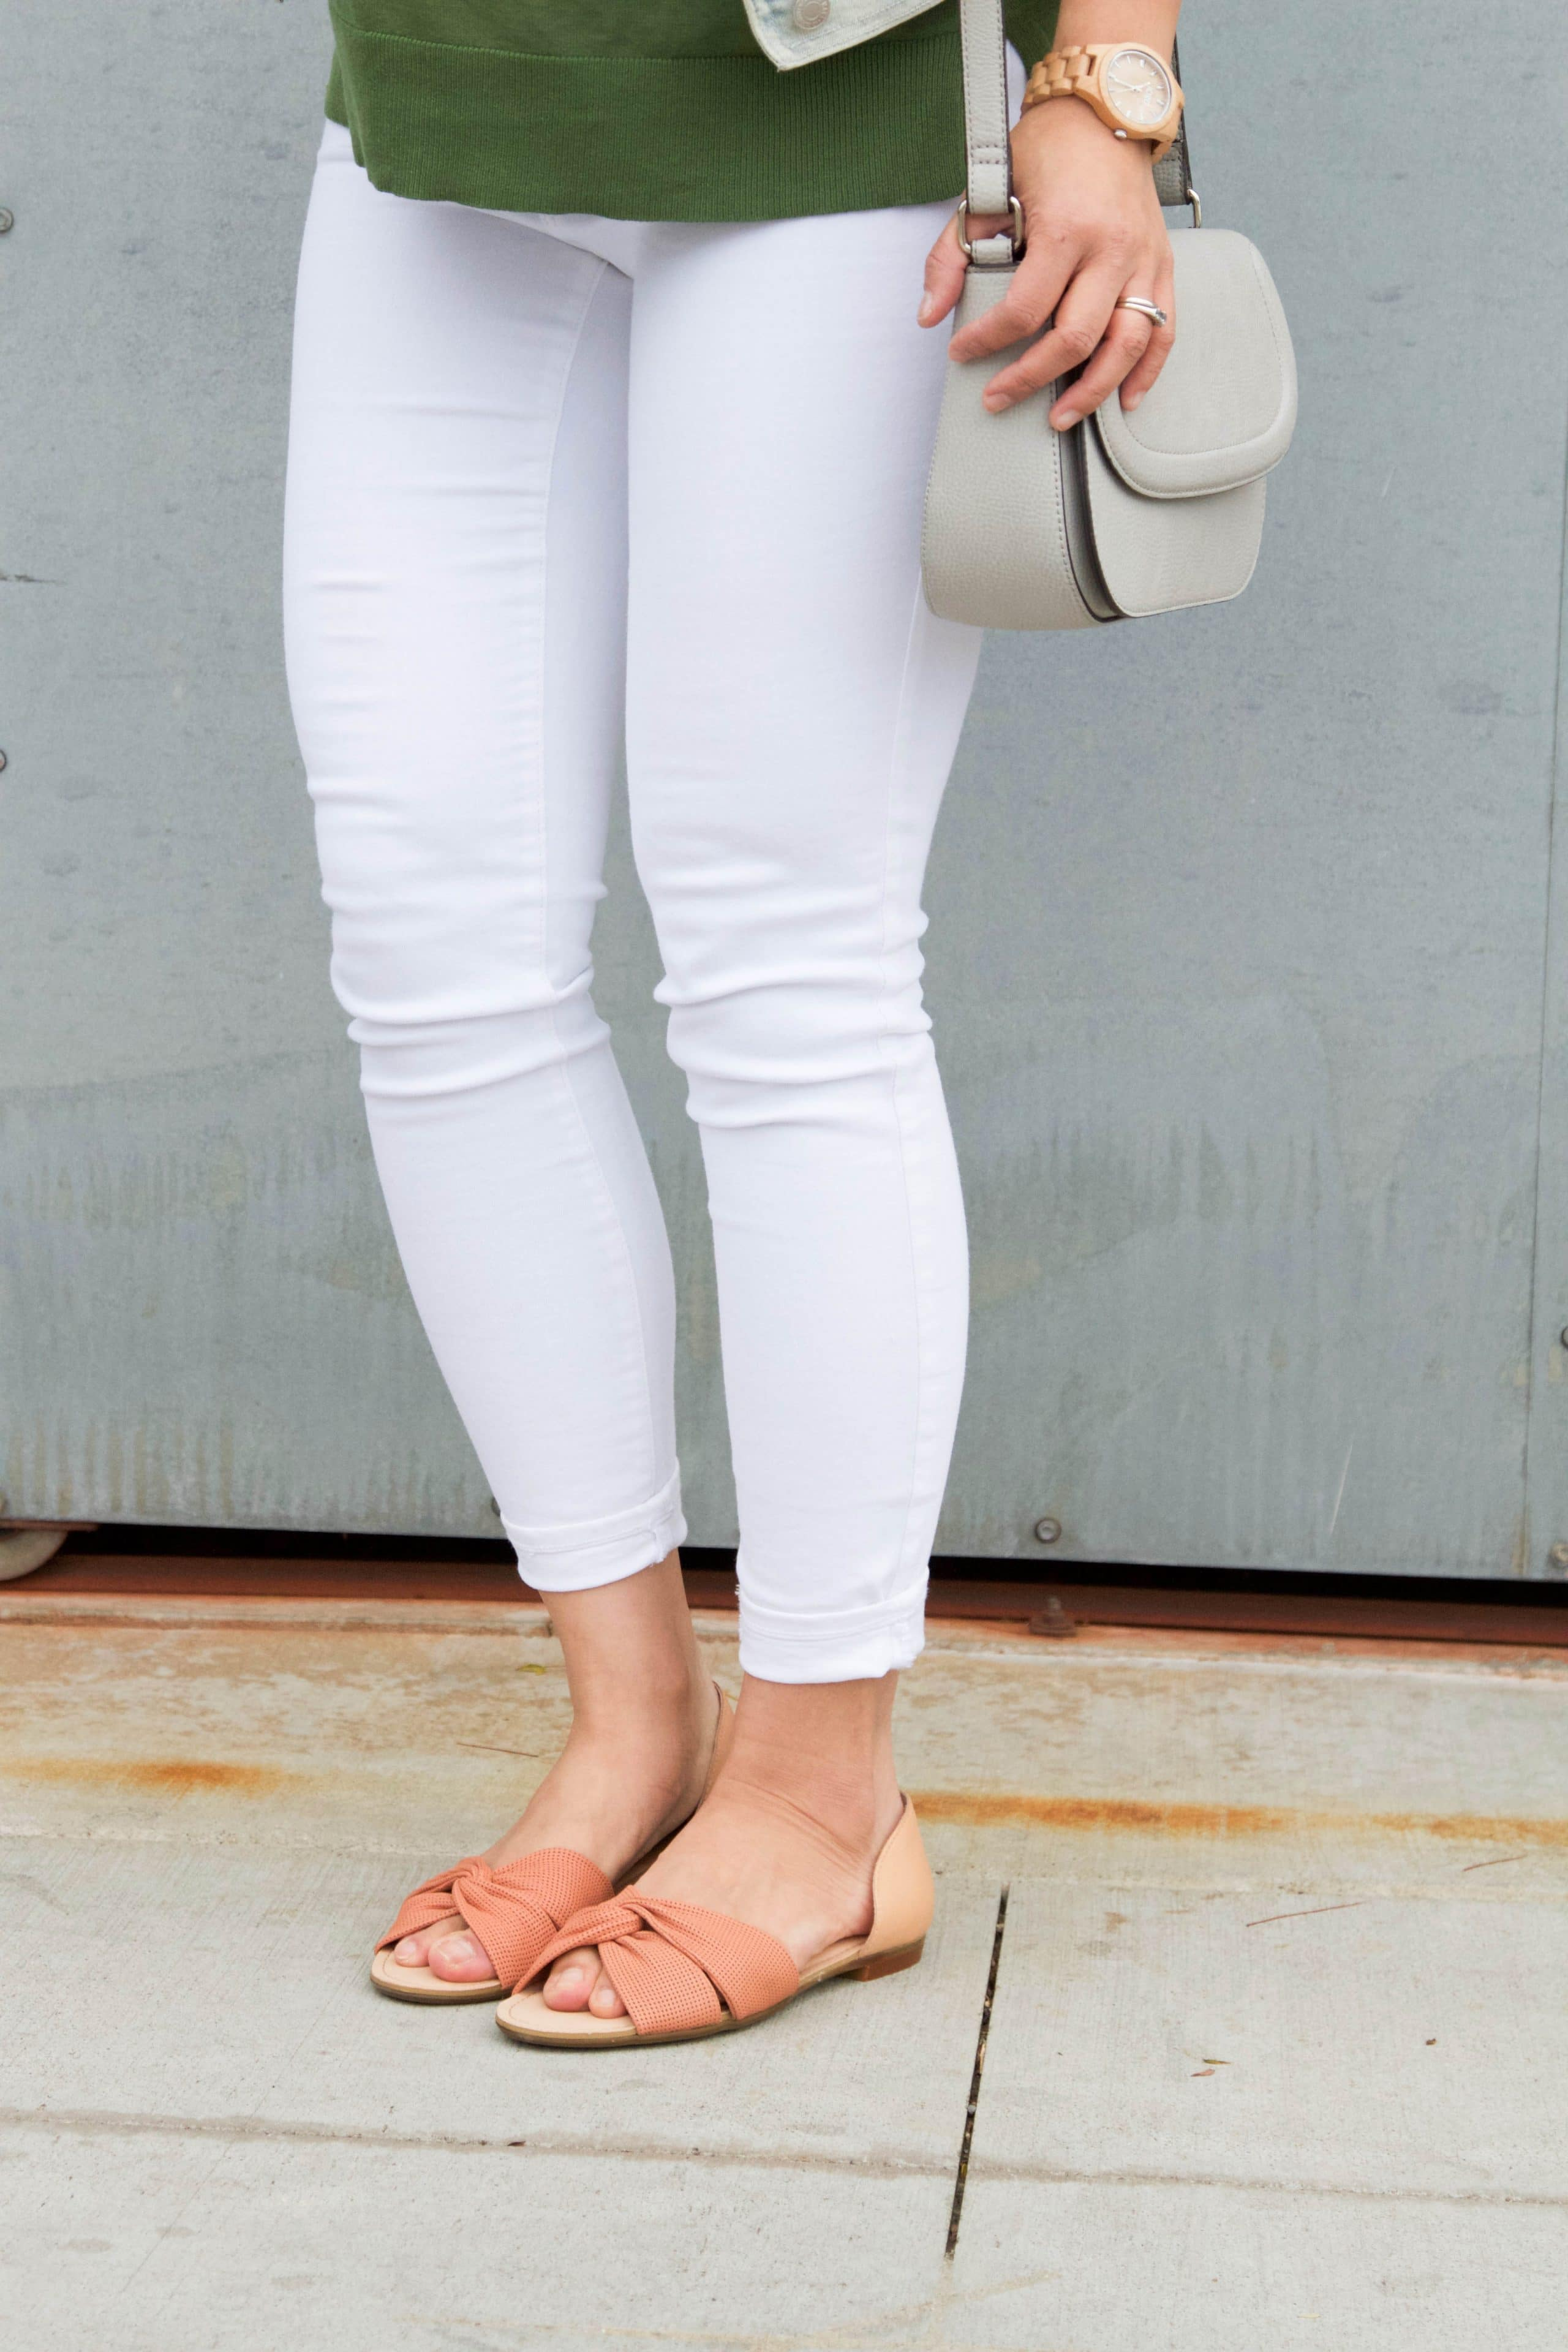 Peach Sandals + White Jeans + Green Sweater